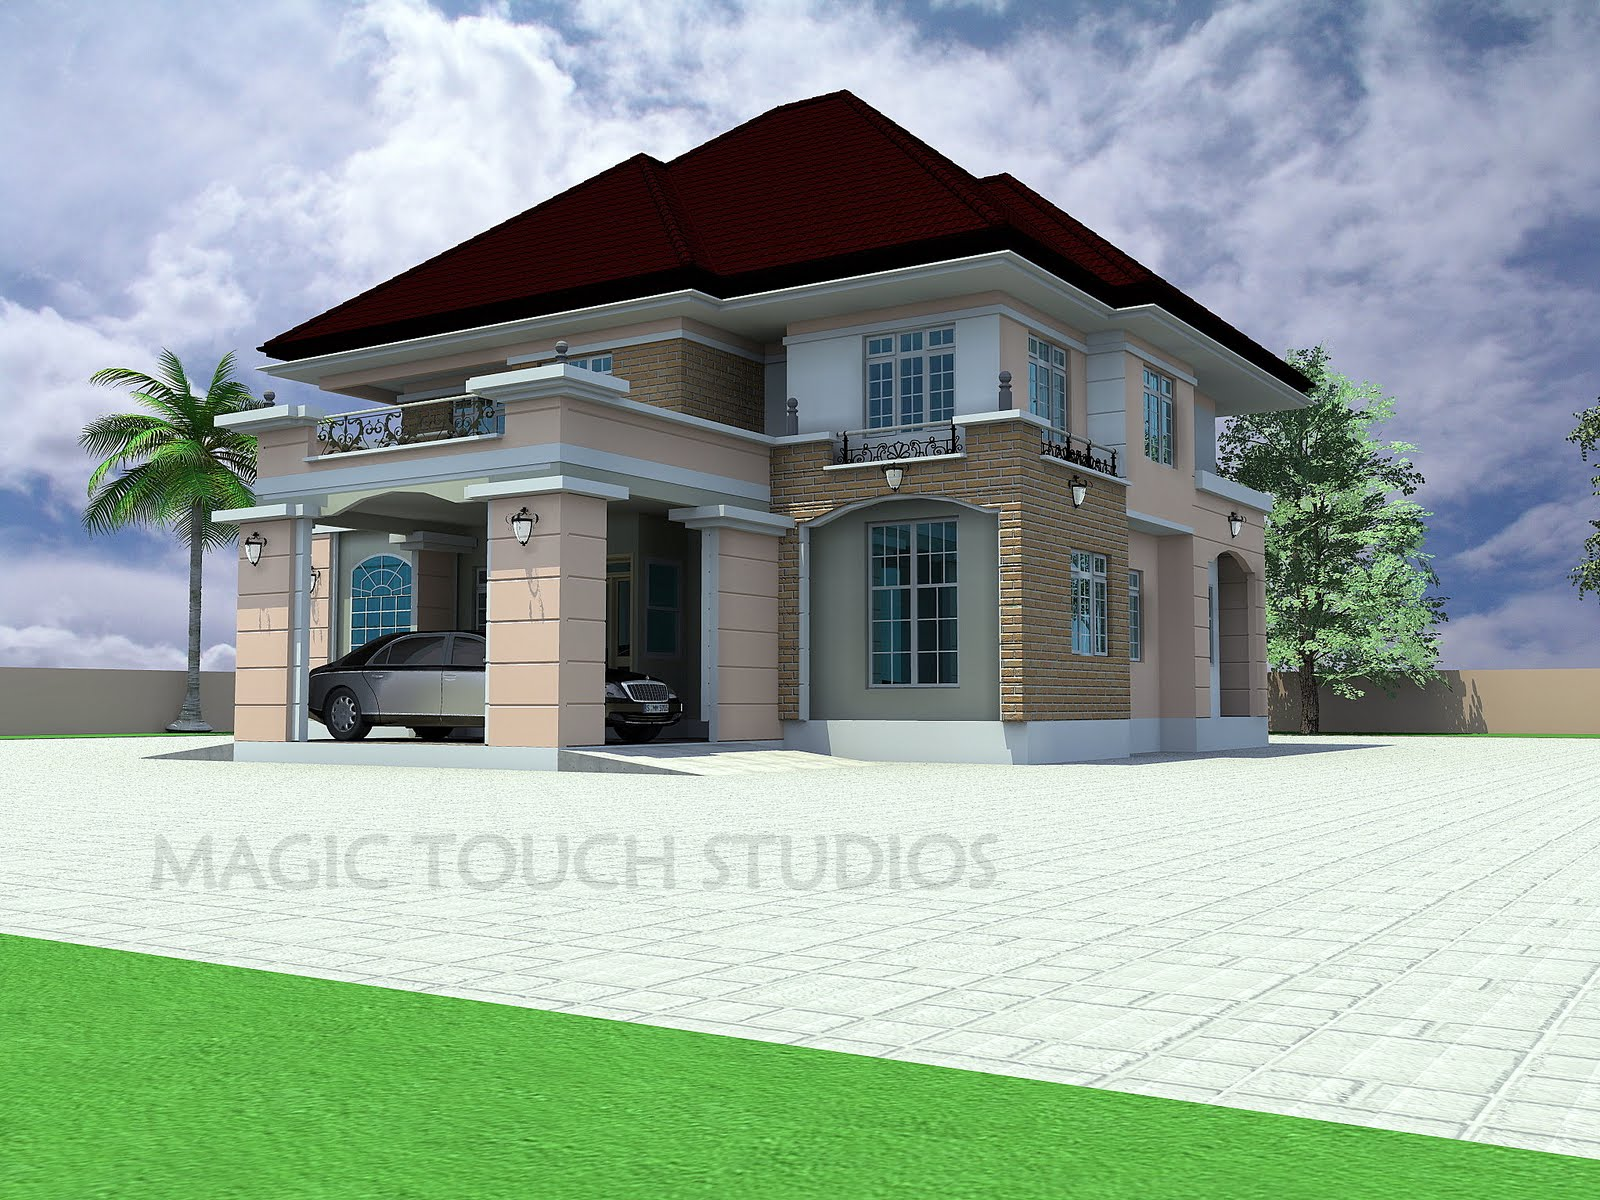 Duplex Nigeria Joy Studio Design Gallery Best Design